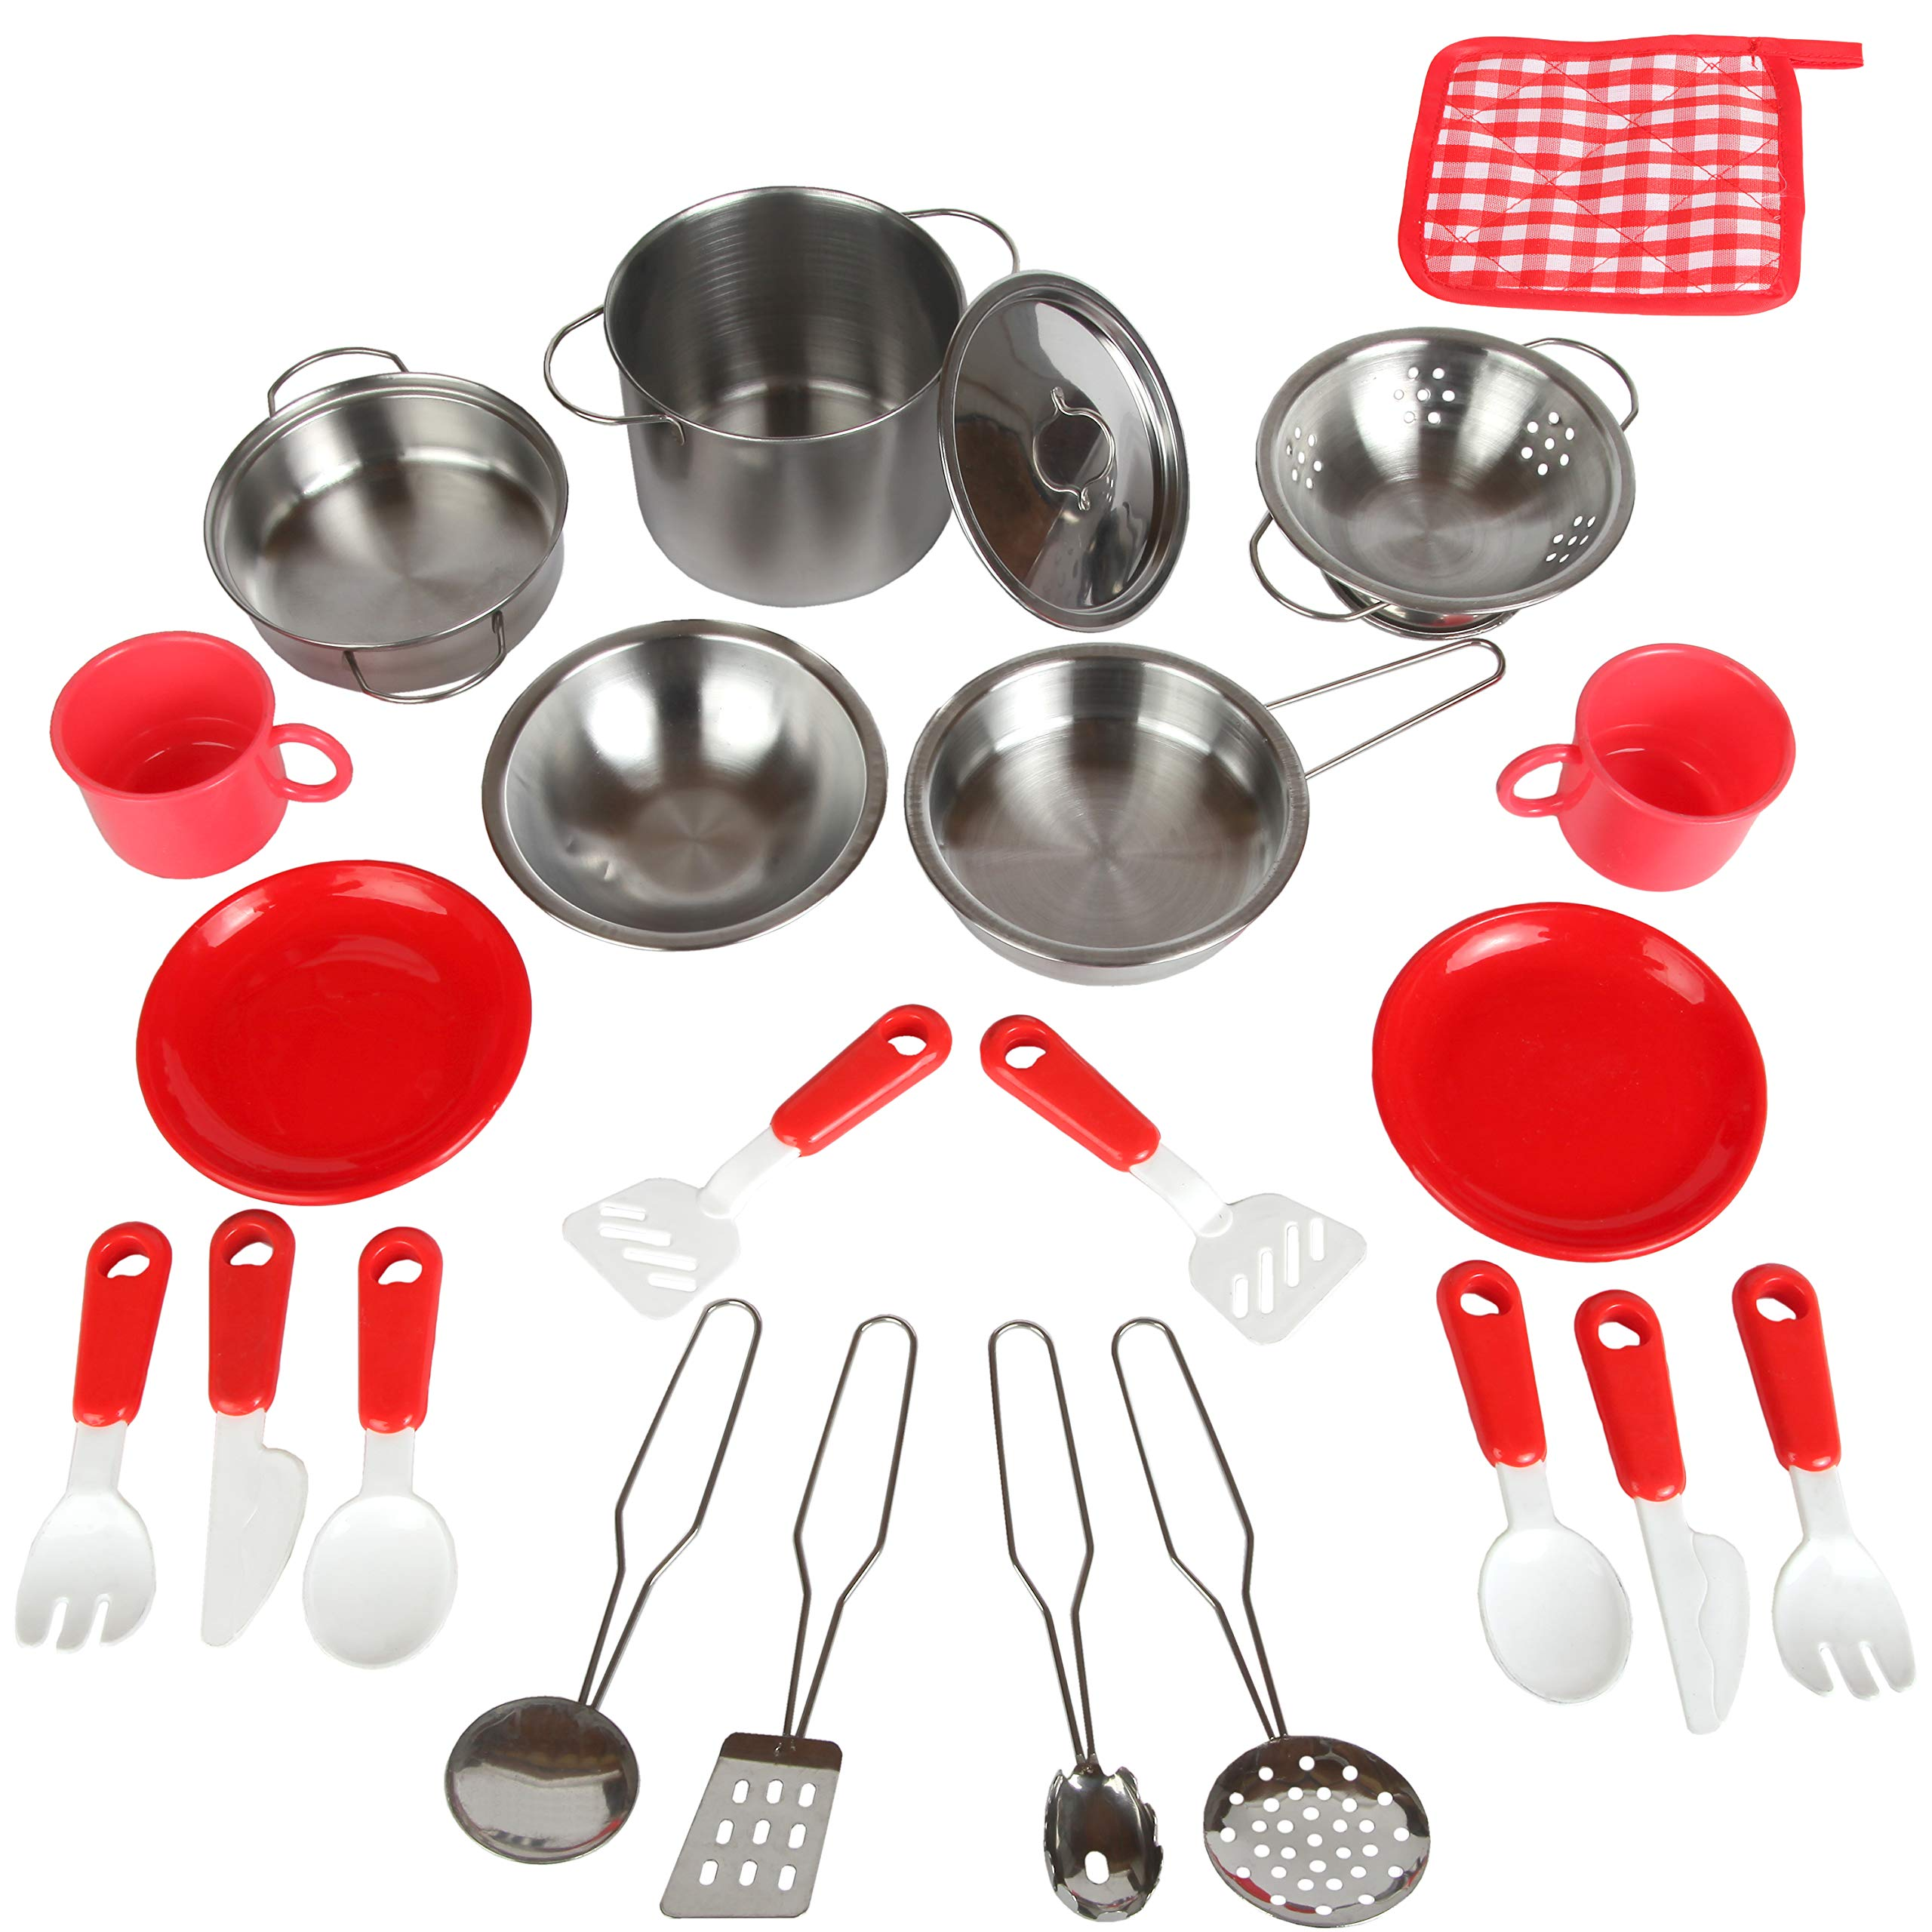 Mommy Please Play Kitchen Accessories for Pretend Food - Great Toys for Toddlers and Kids Include Stainless Steel Pots and Pans Set - Plus Bonus Dishes for Girls and Boys by Mommy Please